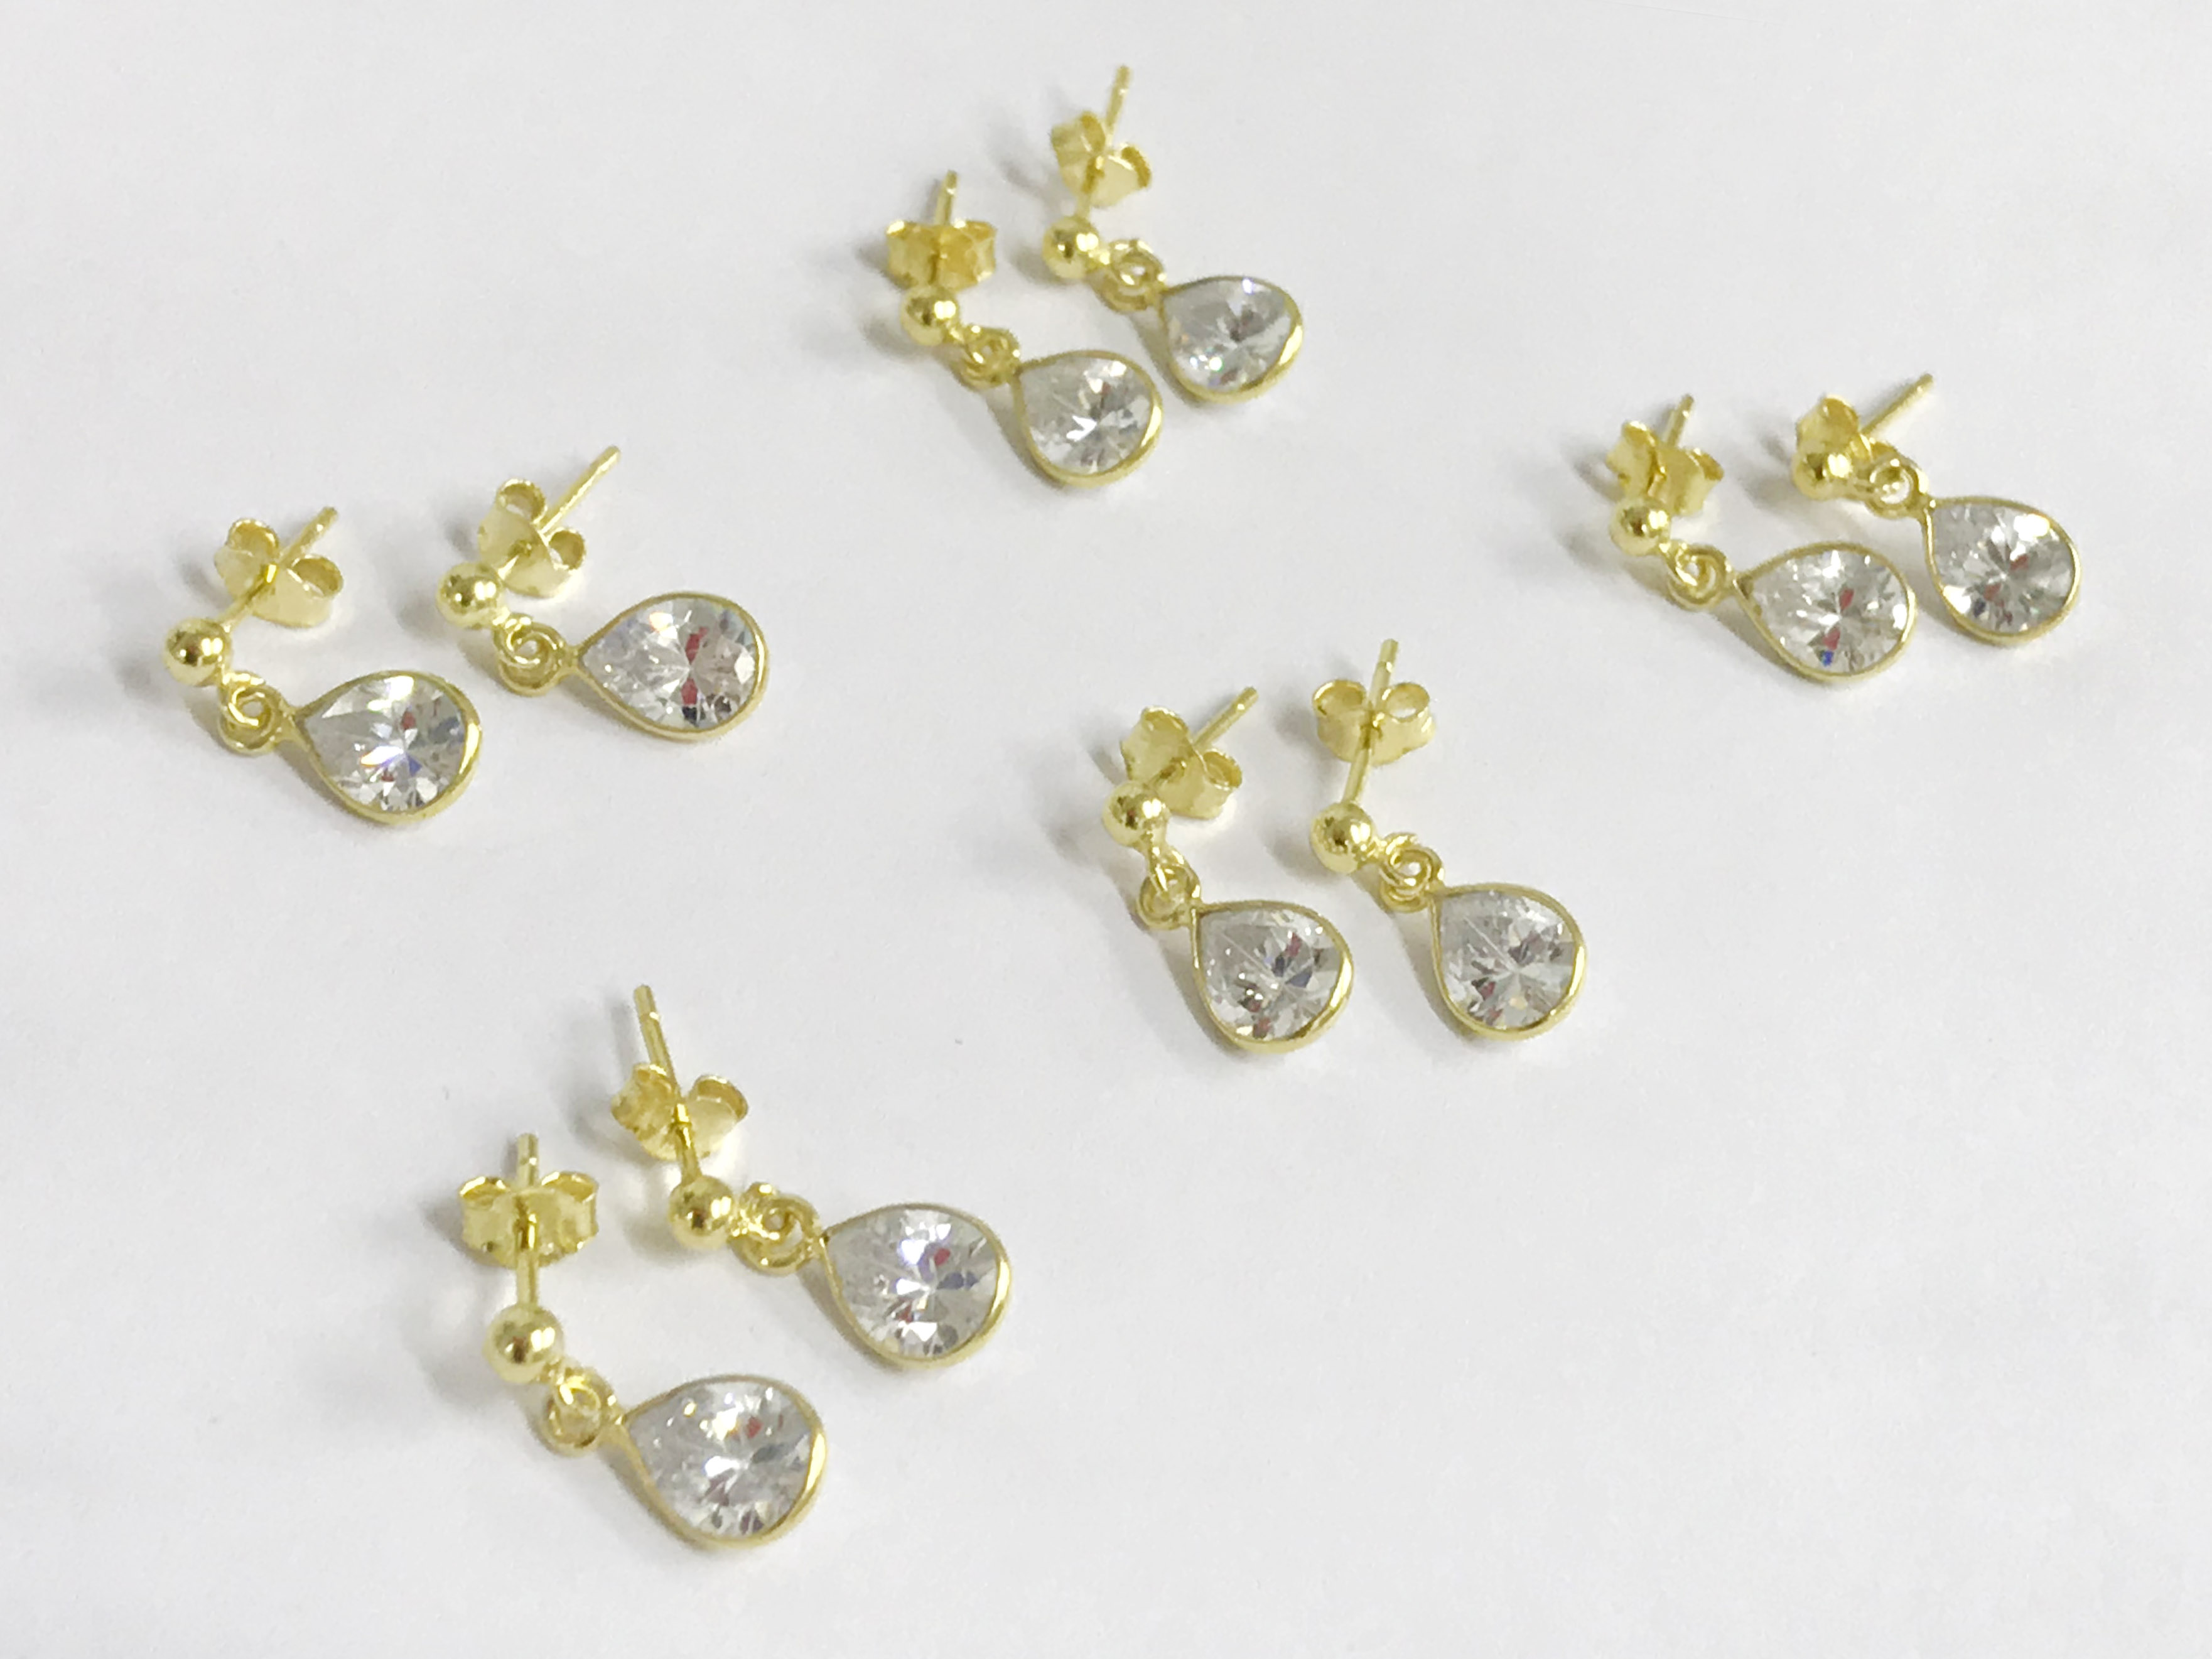 Lot 1 - X5 stud earrings 14k gilt silver topaz stud earrings